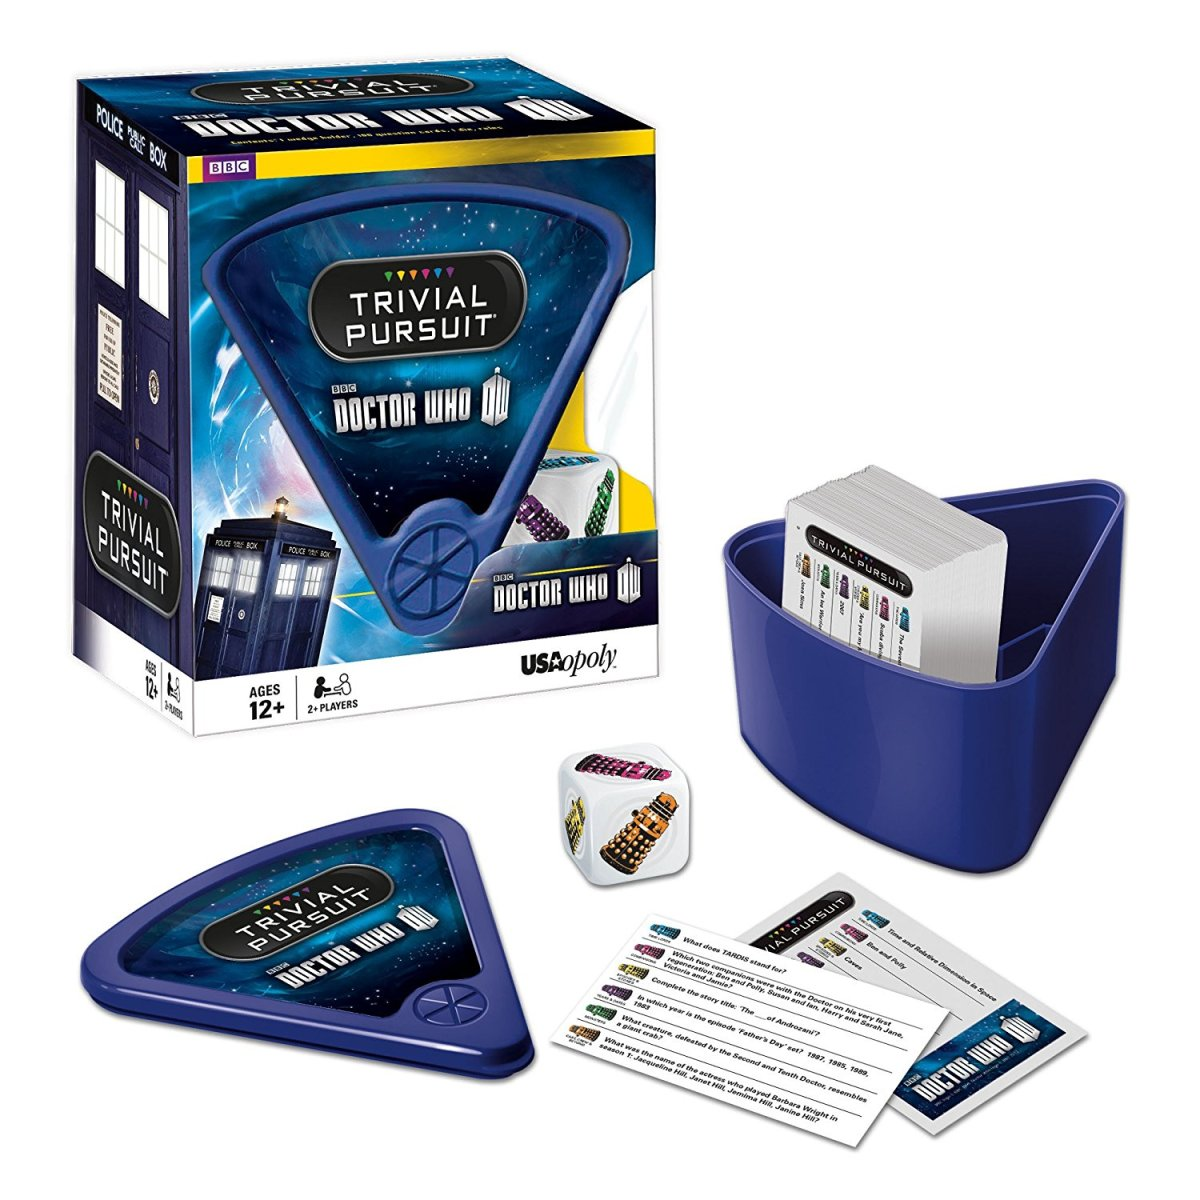 Doctor Who Trivial Pursuit $12-$20. Have a Doctor Who friend that's a know-it-all? Well test their knowledge. This set does skew more toward New Who but it's still fun to play regardless. http://amzn.to/2gCwnSE